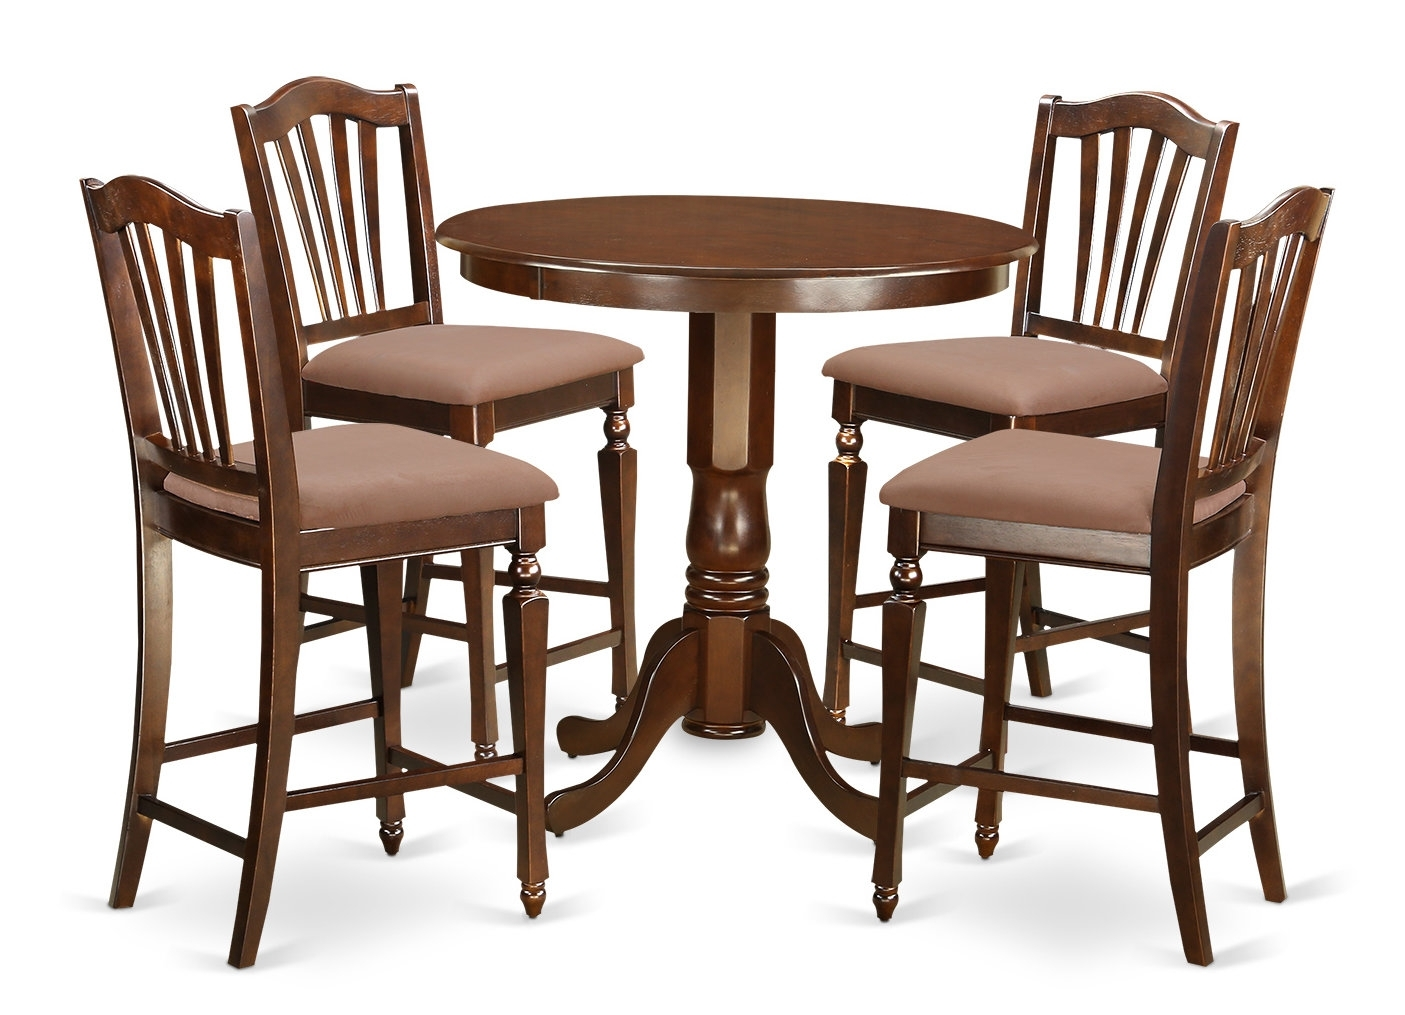 East West Jackson 5 Piece Counter Height Pub Table Set | Wayfair Pertaining To 2018 Jaxon Grey 6 Piece Rectangle Extension Dining Sets With Bench & Wood Chairs (Image 5 of 20)